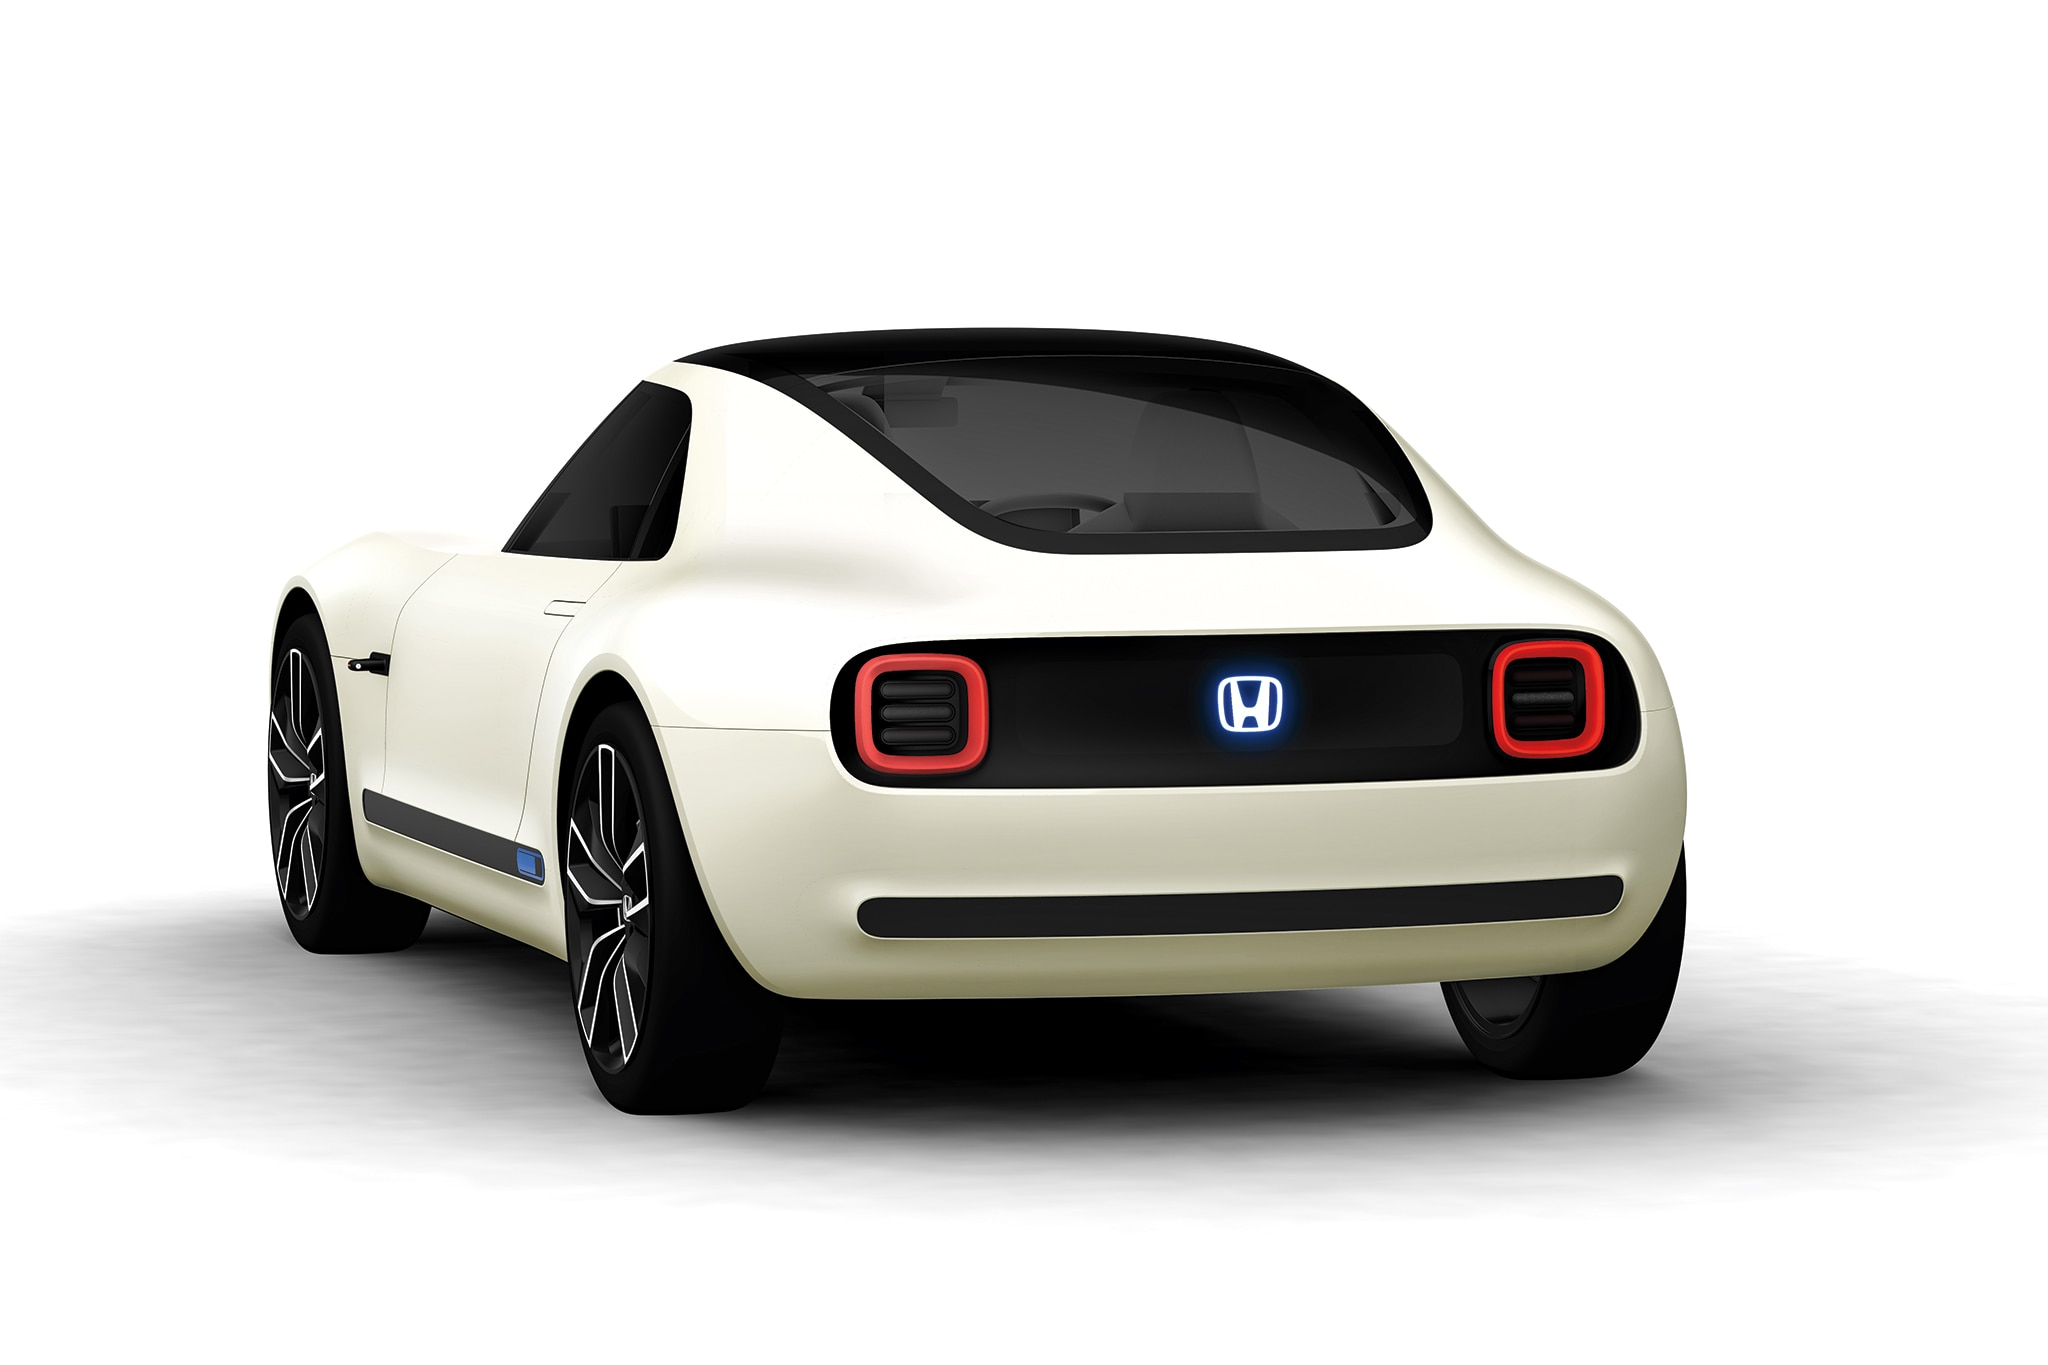 2018 Concept Of The Year Honda Sports Ev And Urban Ev Automobile